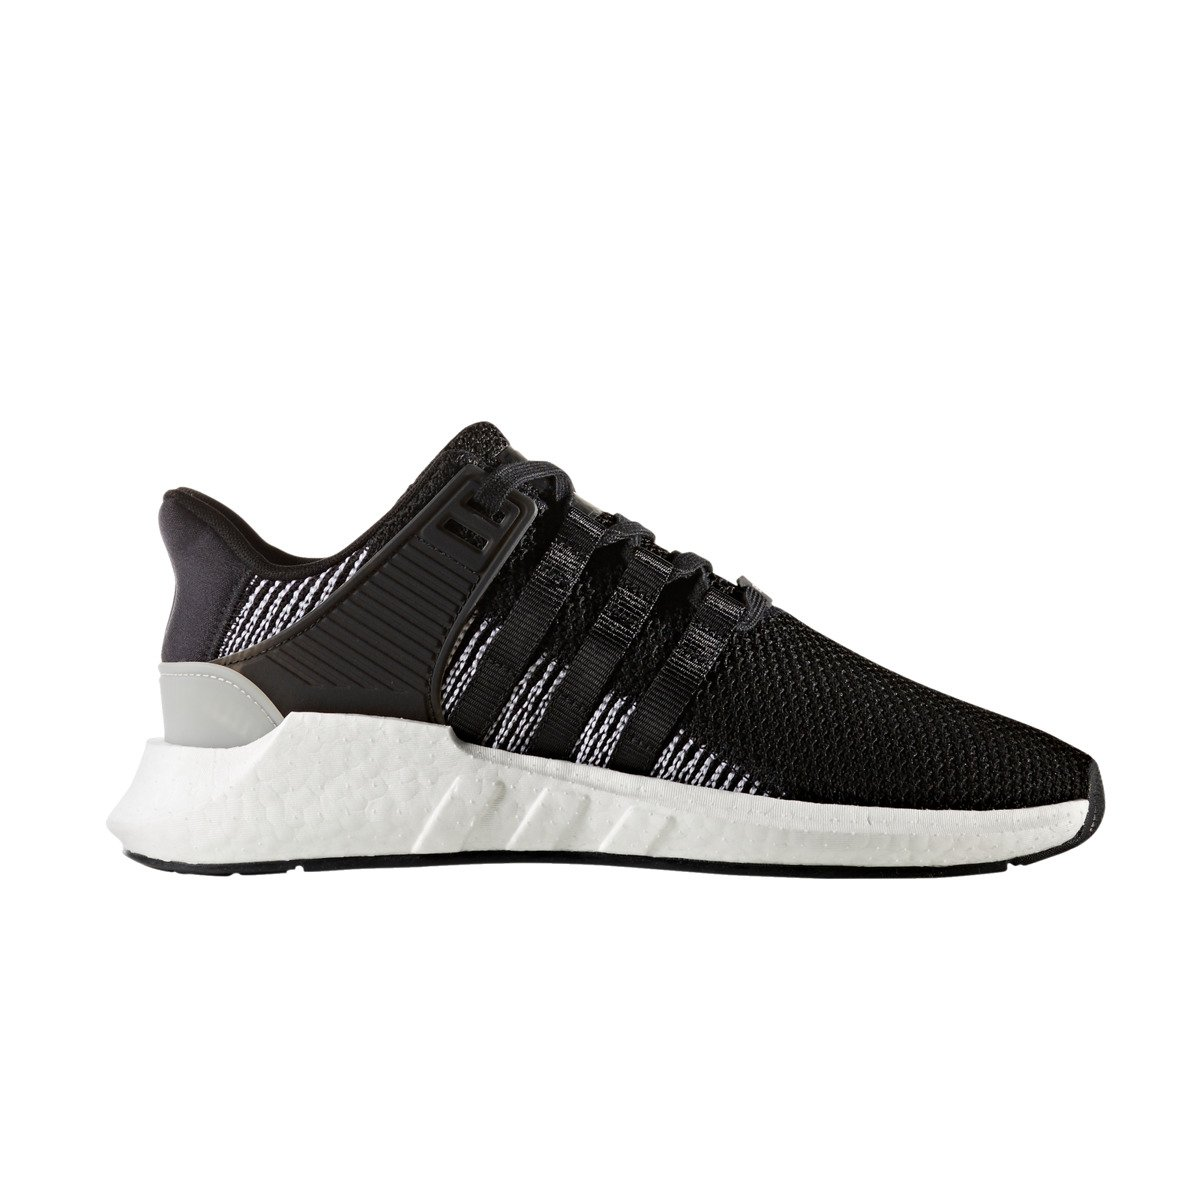 online store 8a0d5 08be7 Adidas EQT Support 93/17 Shoes - BY9509